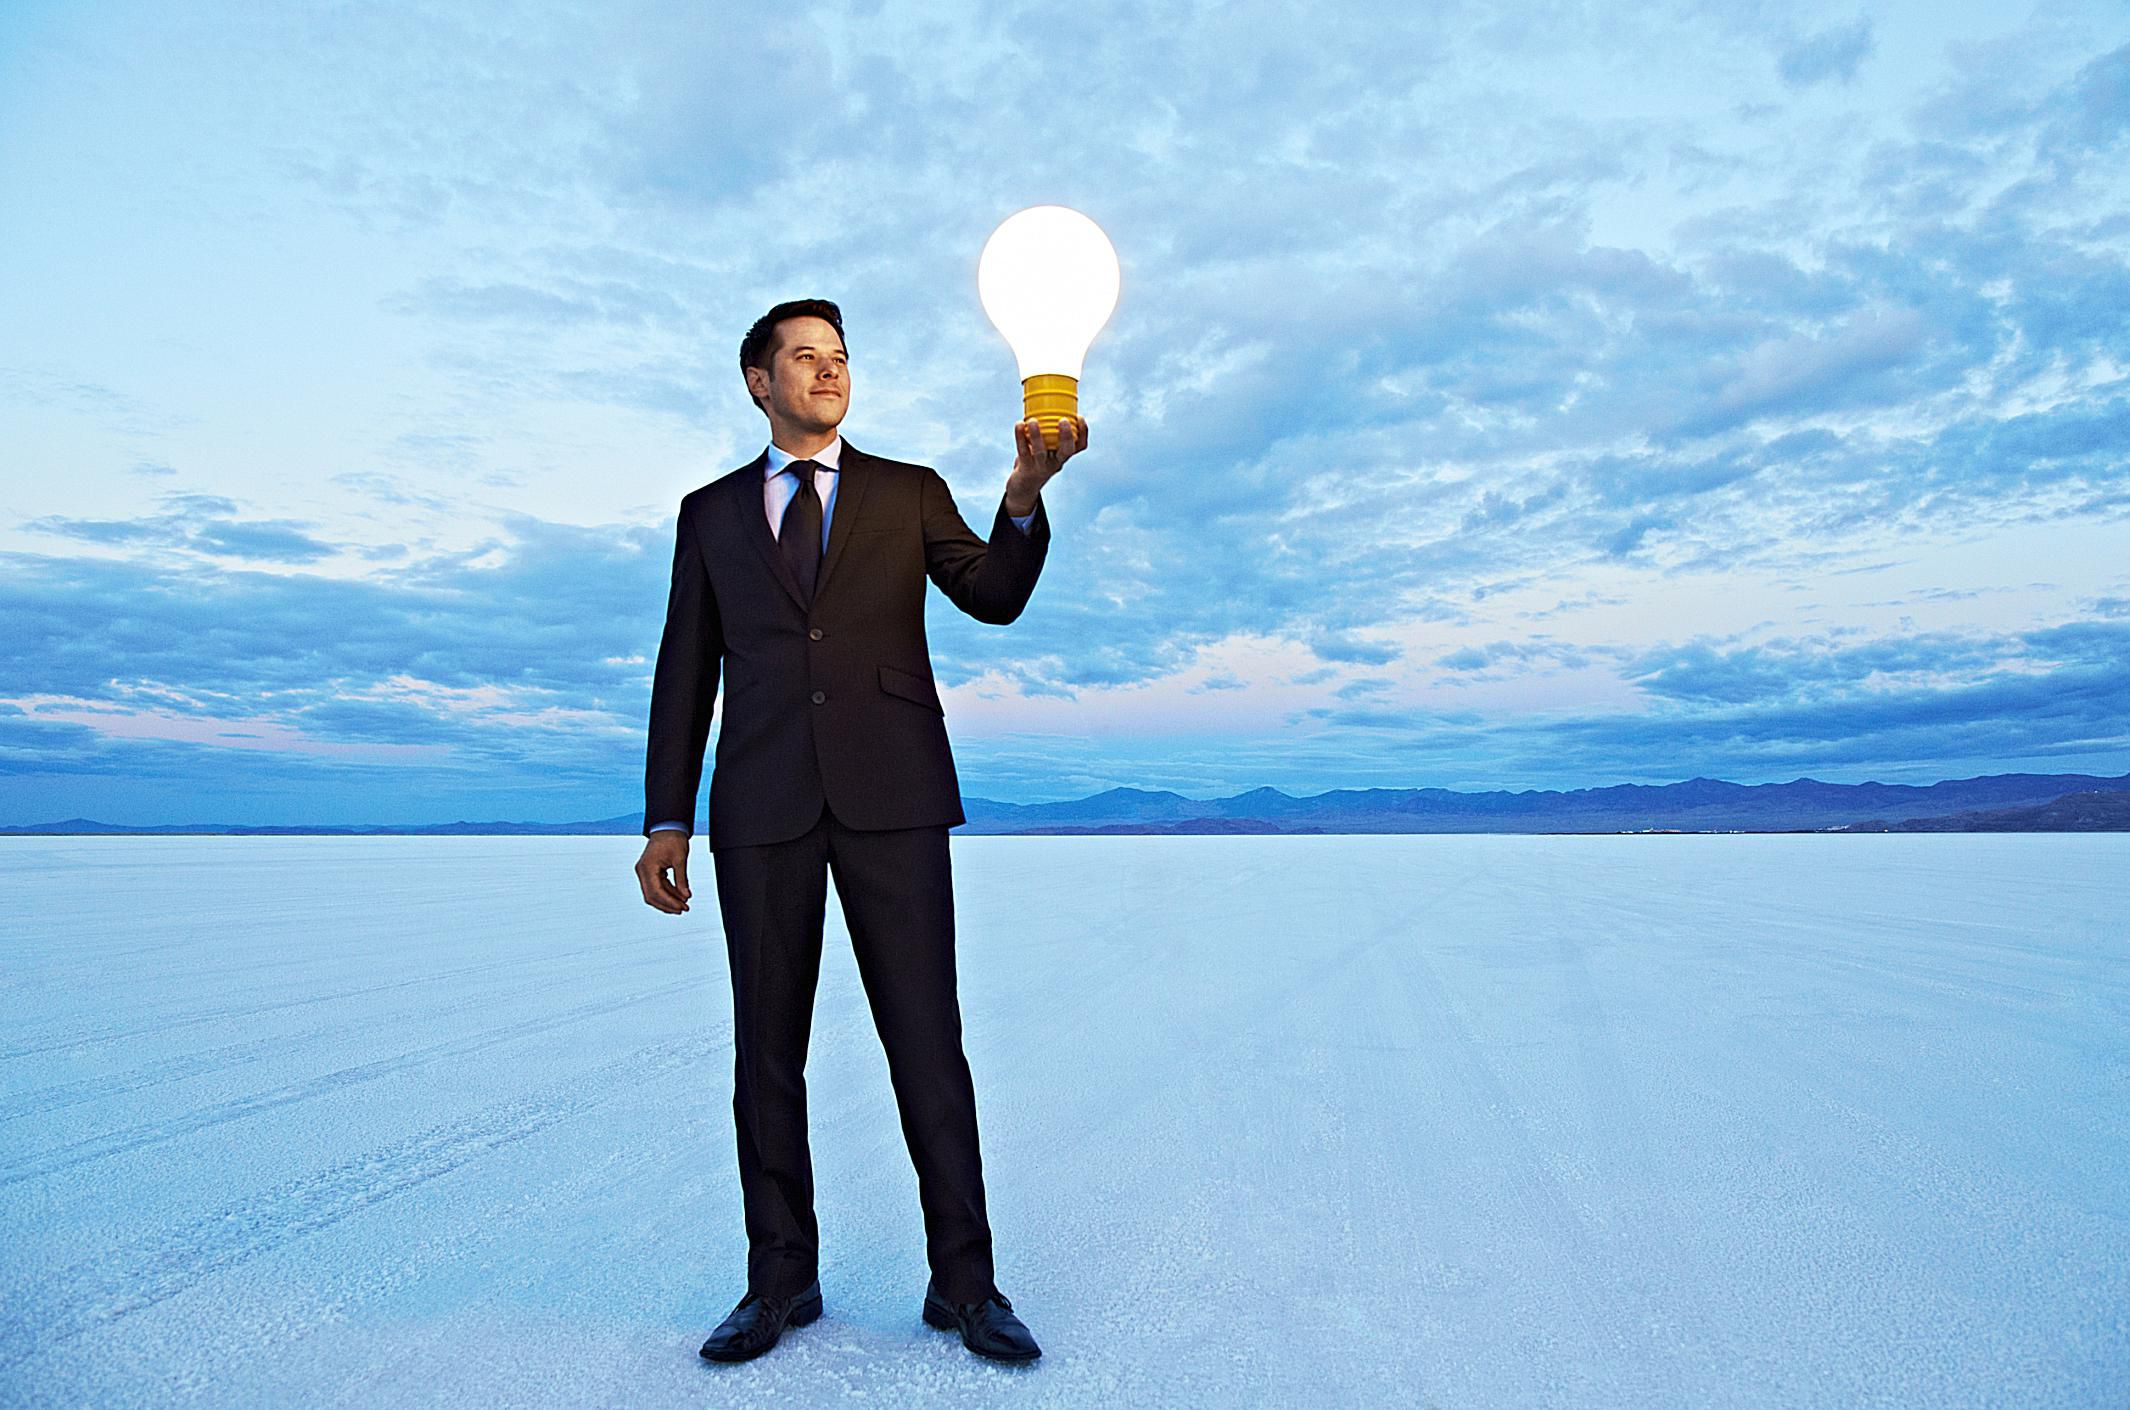 How To Evaluate A Business Idea Before Taking The Plunge